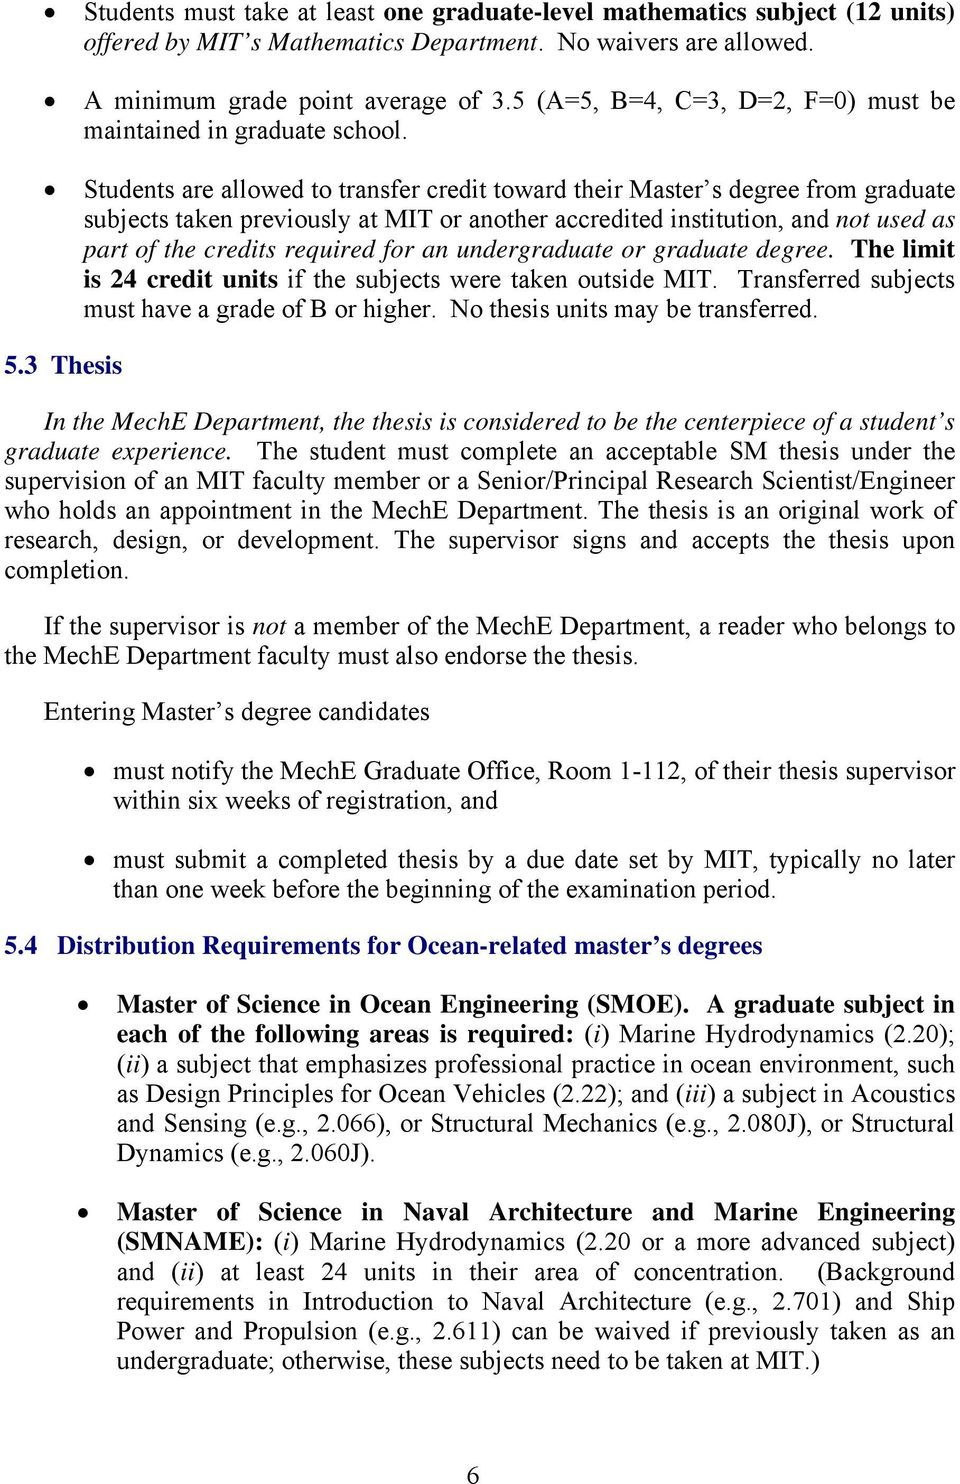 Guide to Graduate Study in Mechanical Engineering at MIT - PDF